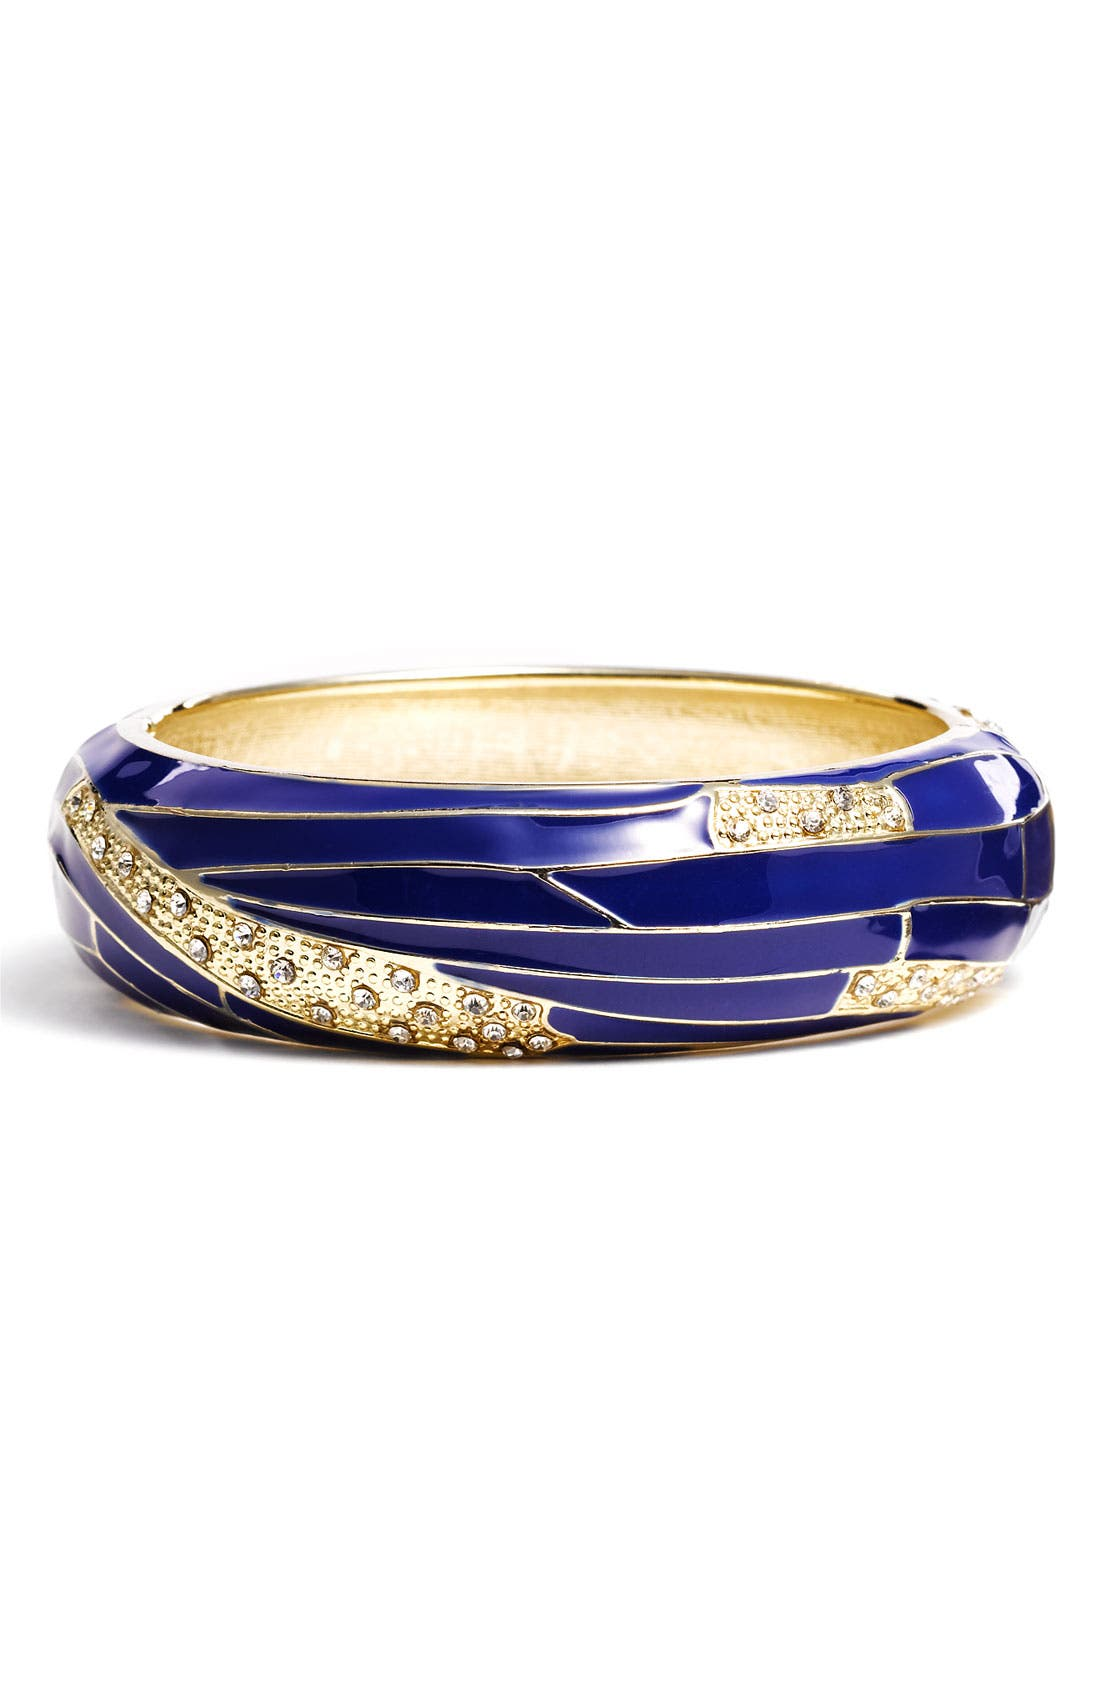 Large Insect Wing Enamel Bangle,                             Main thumbnail 8, color,